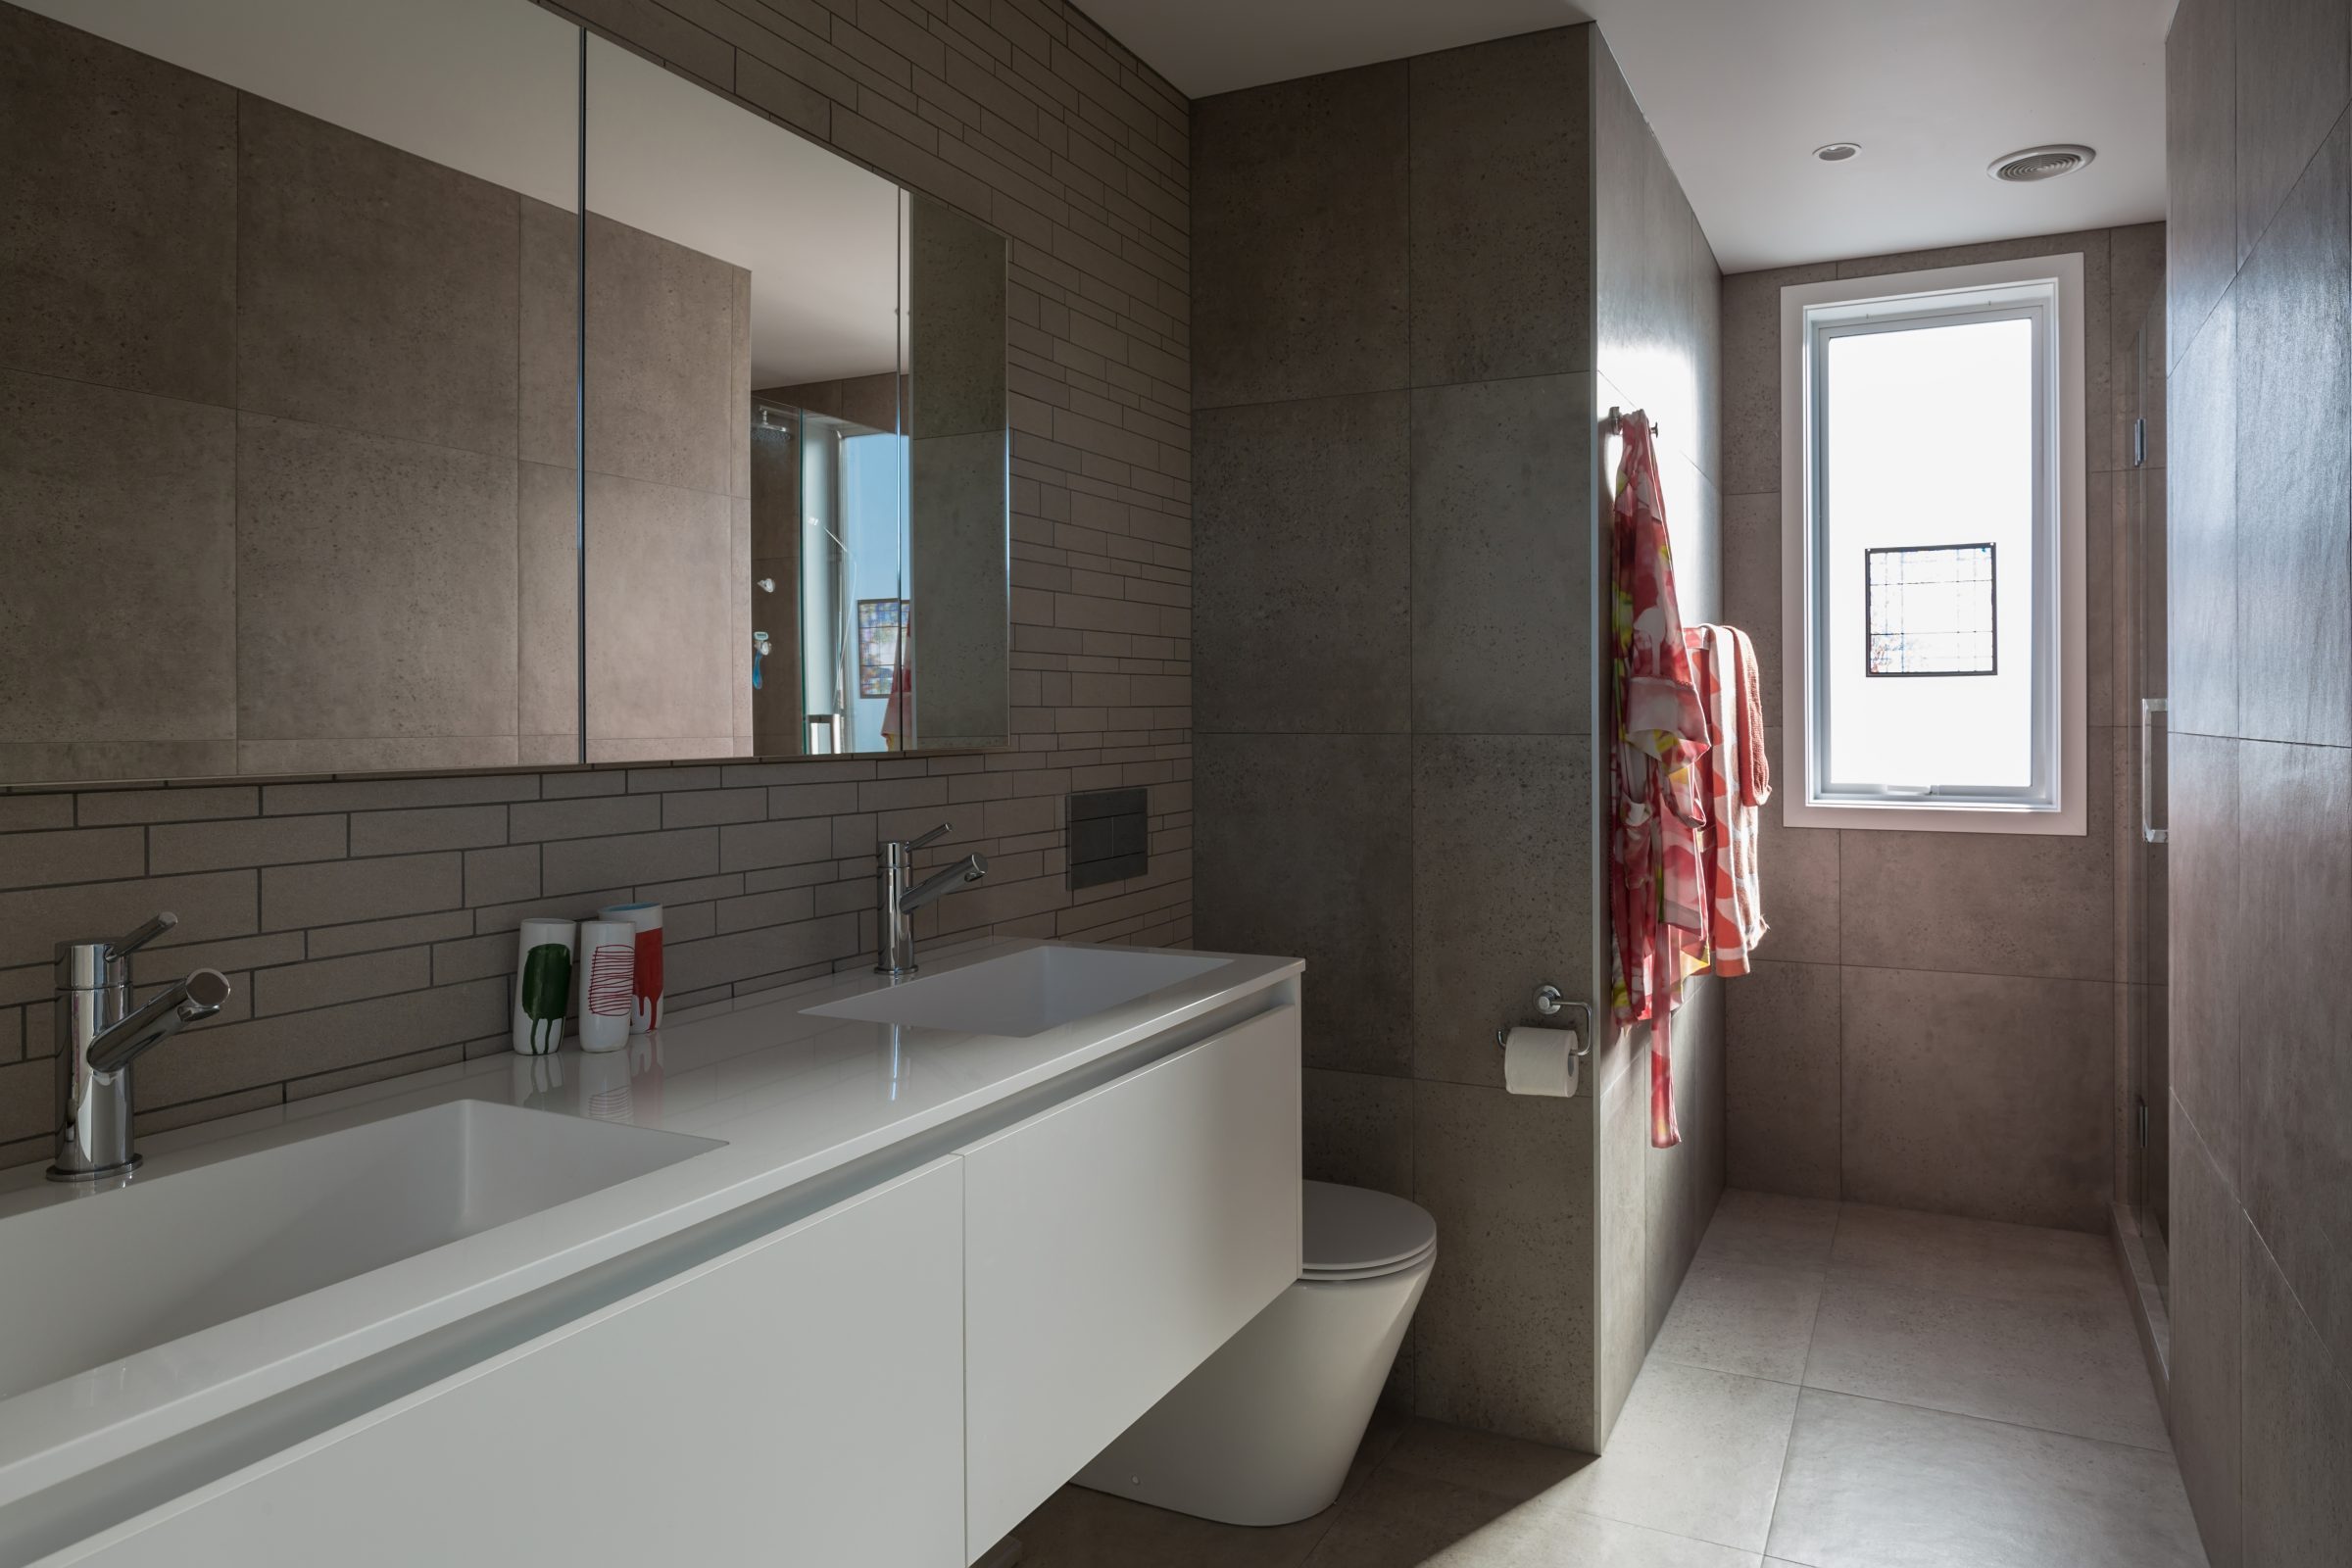 Glendowie renovation new ensuite tiles